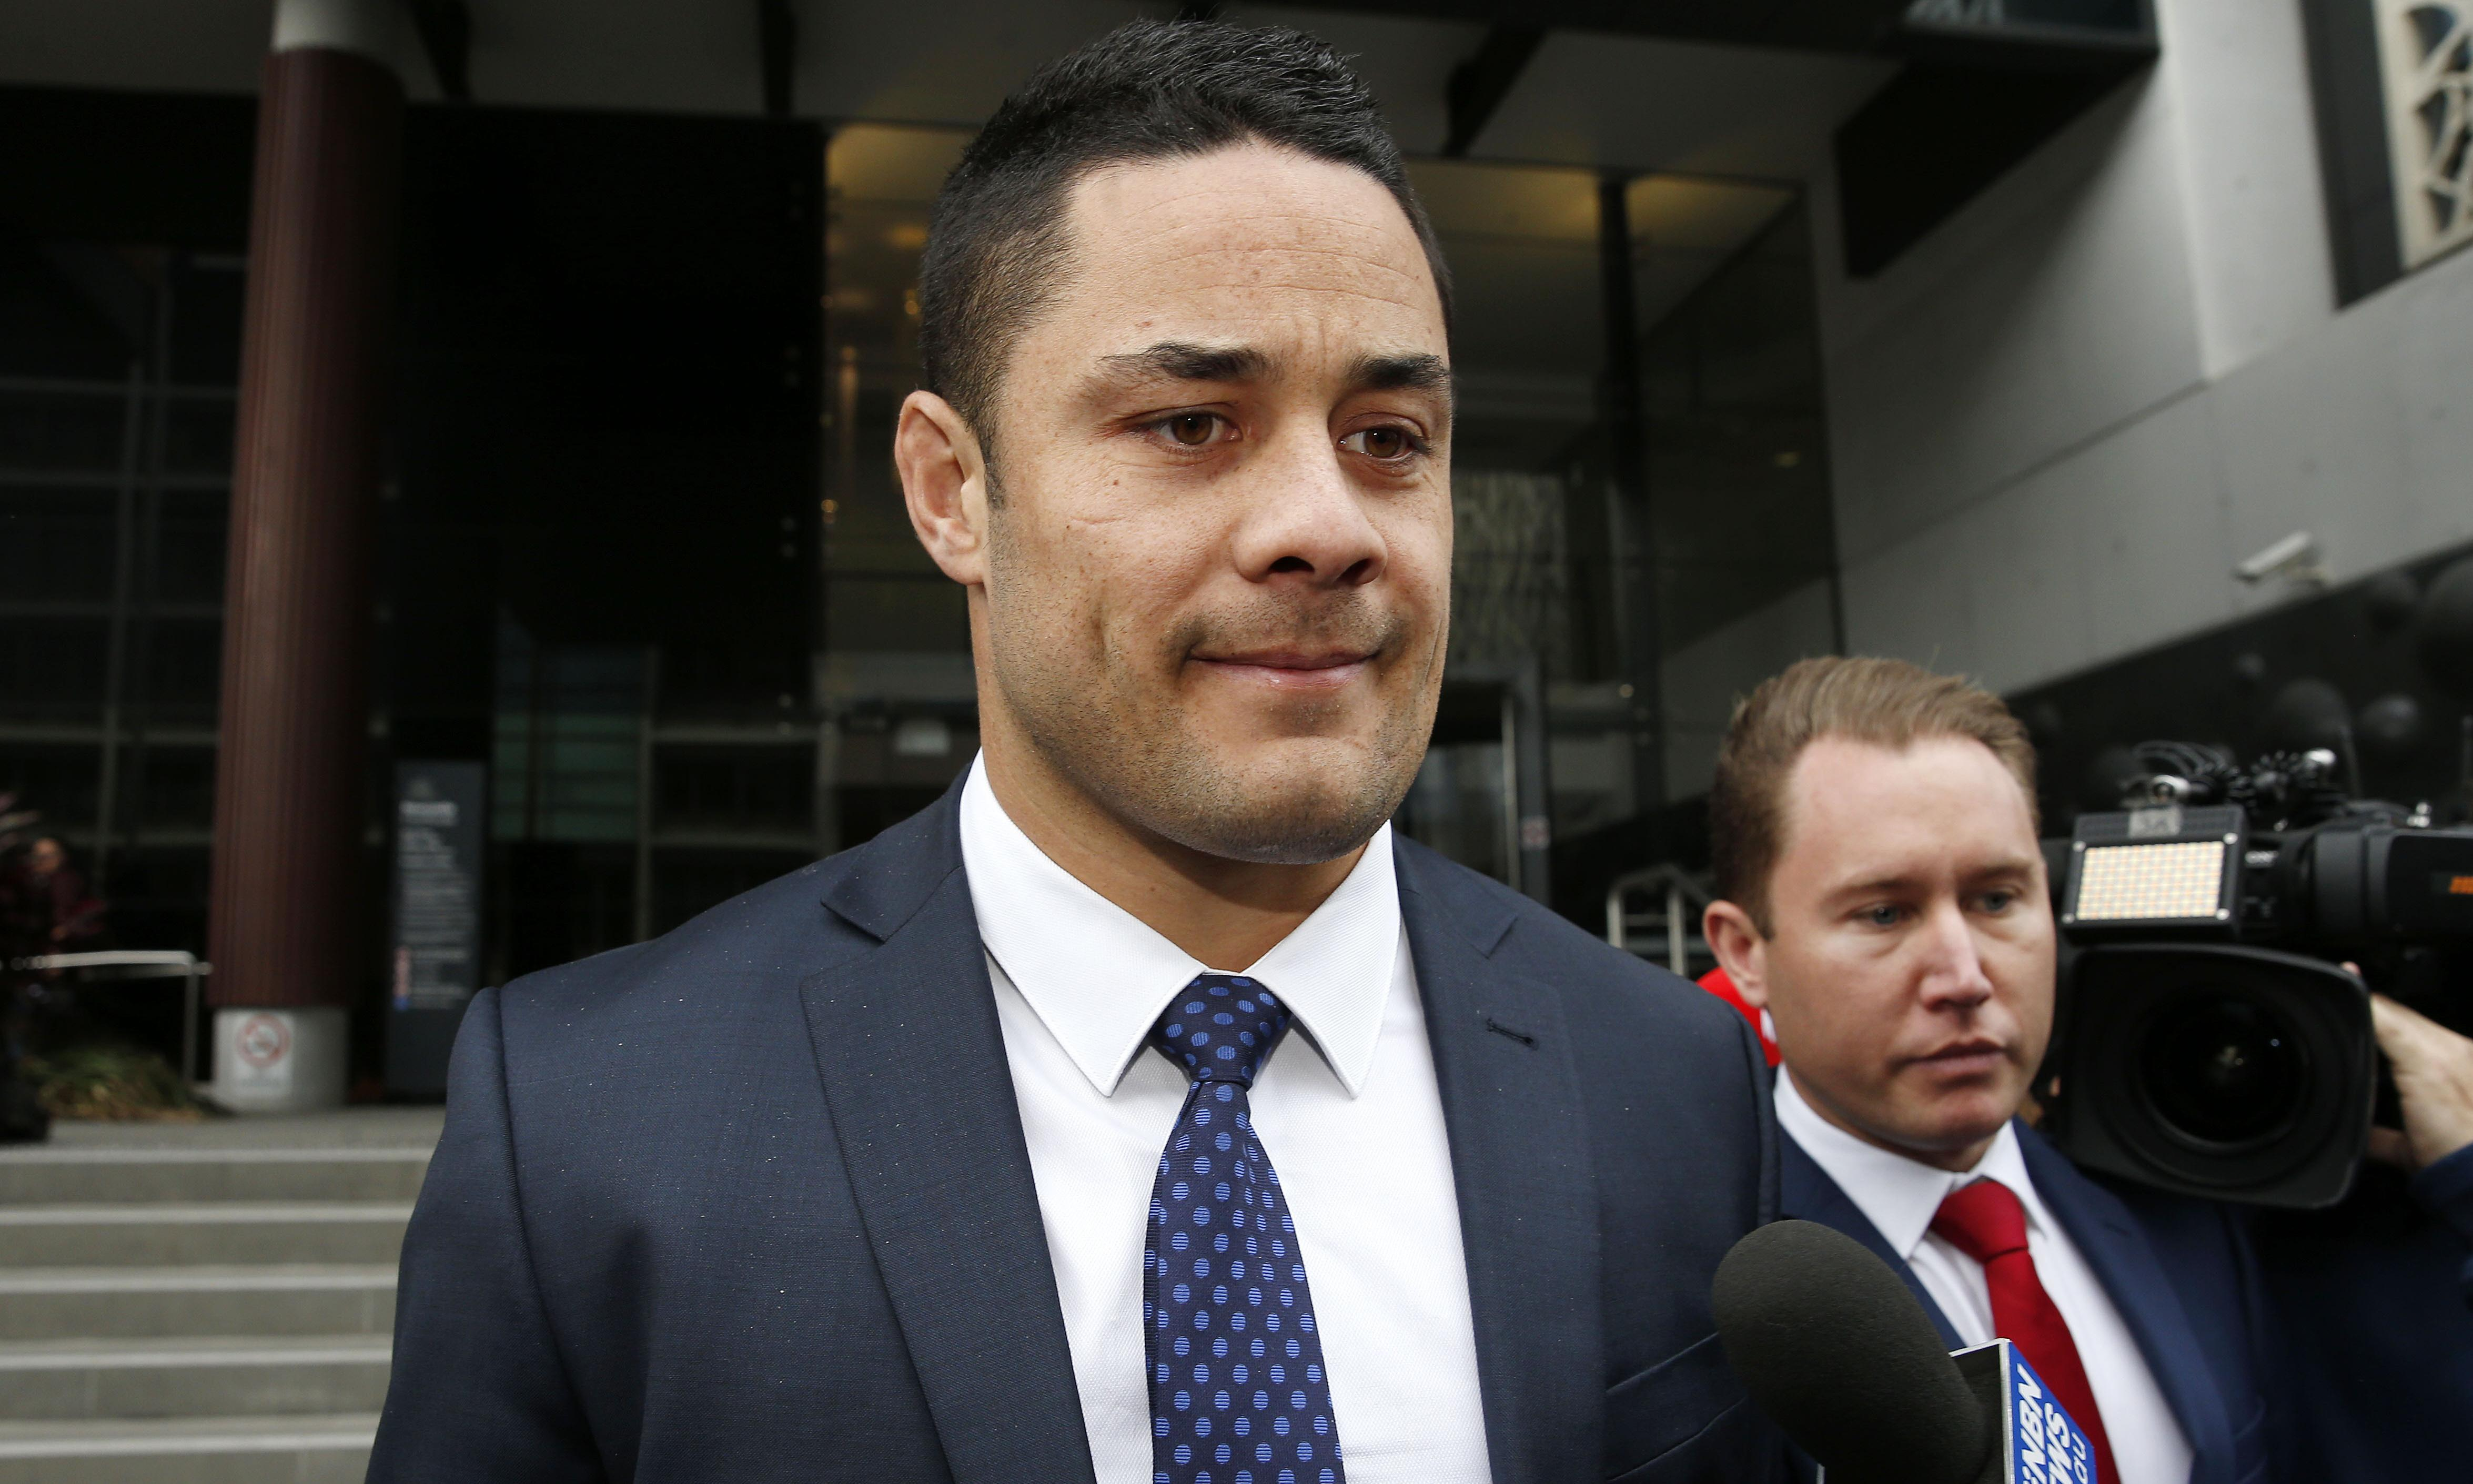 Jarryd Hayne to attend Christian missionary school while awaiting trial on rape charges